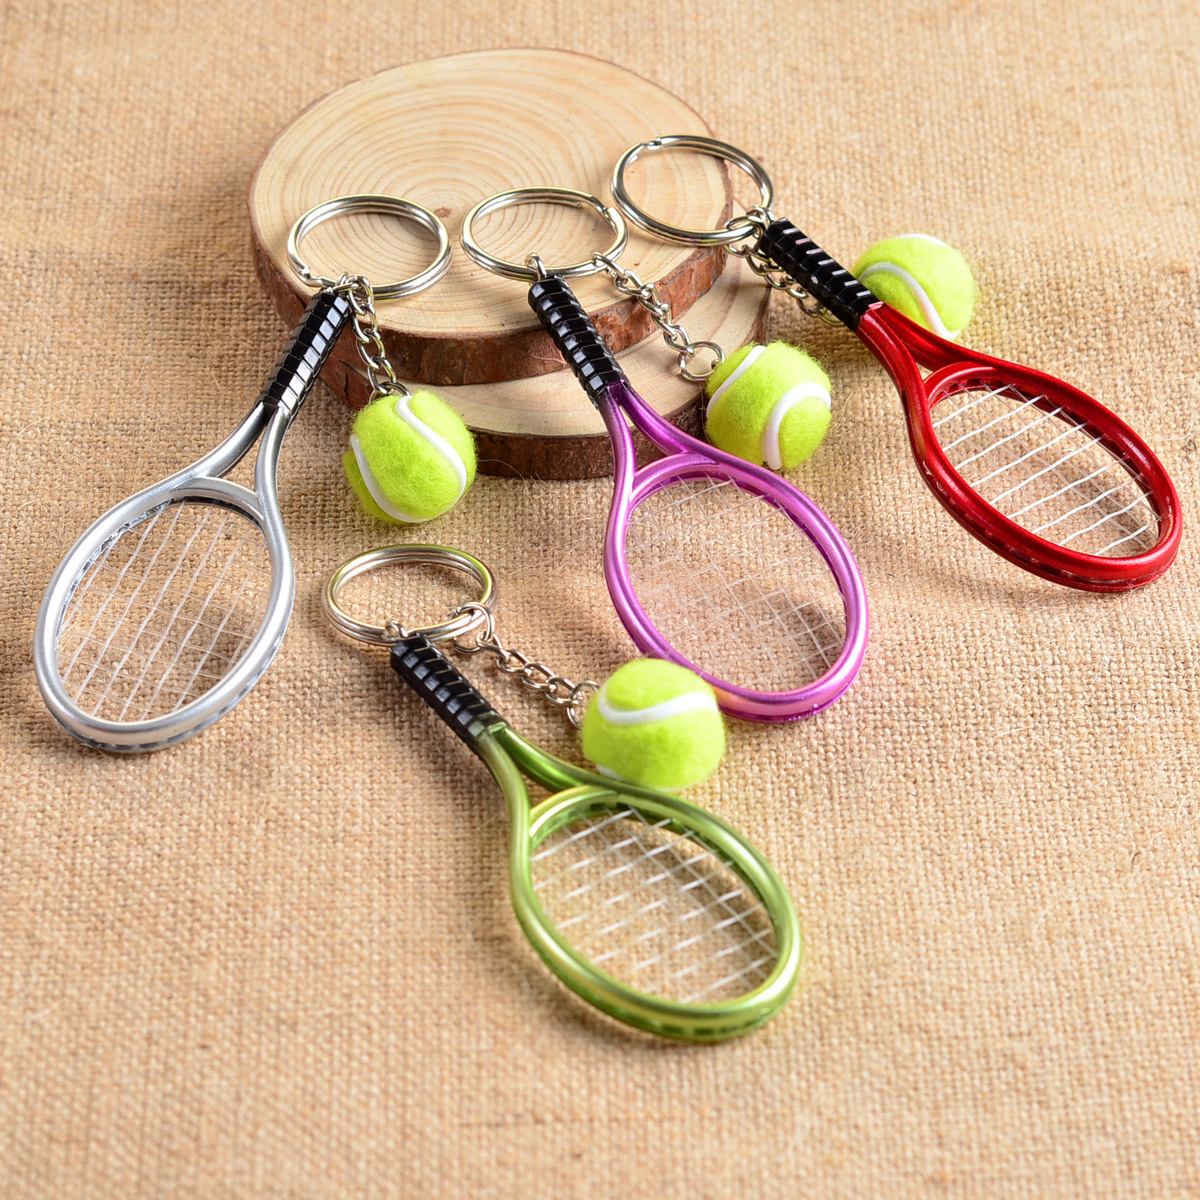 ZARSIA 10pcs Mini Tennis Tennis Racket Key Buckle Tennis Balls Advertisement Promotion Activity Propaganda Gift